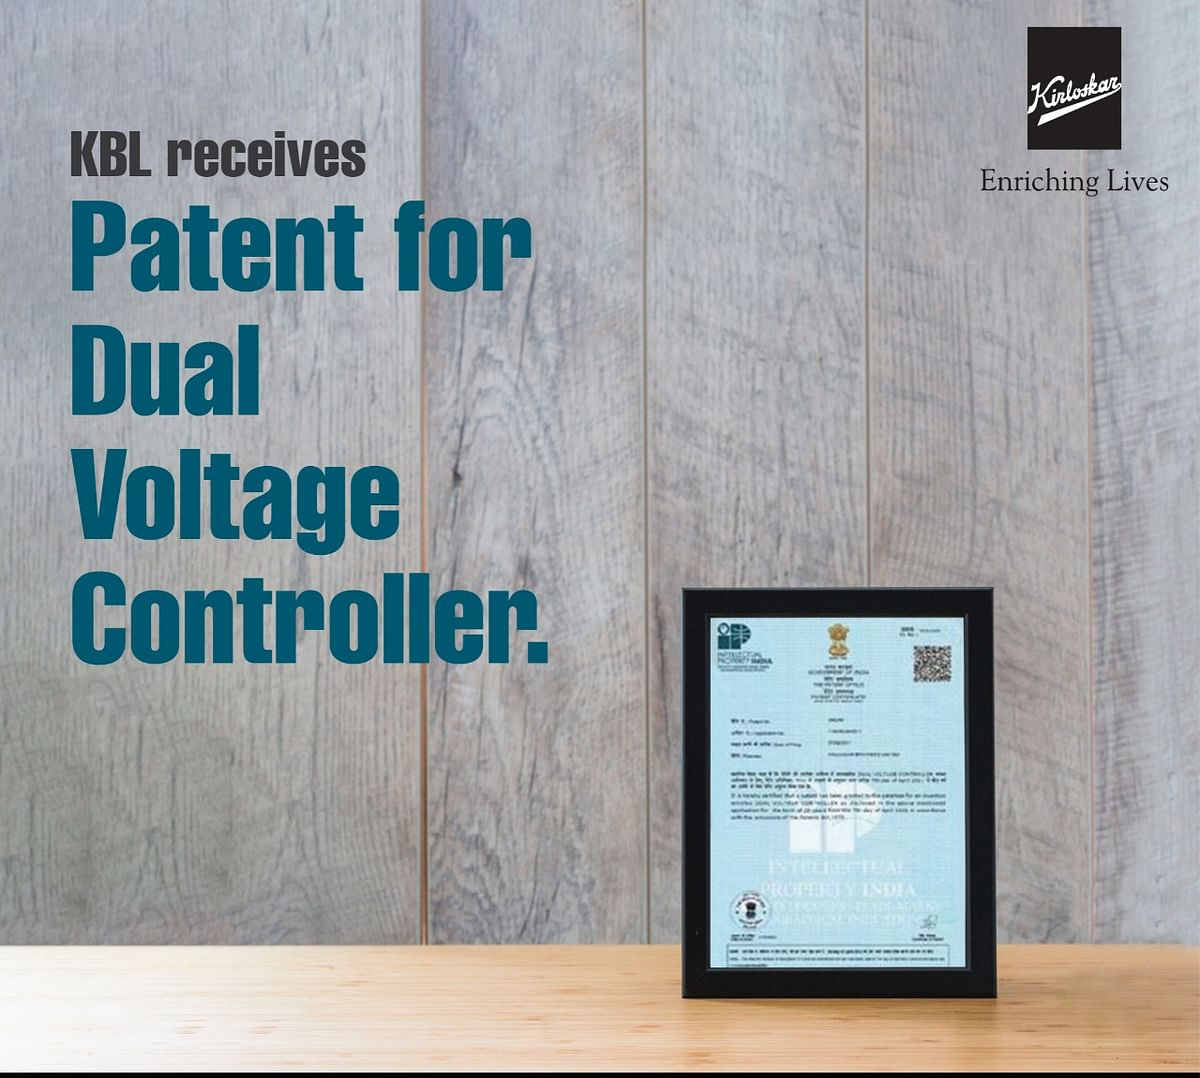 The patent gives KBL a sustainable competitive advantage as the device can be used to significantly improve the performance of a pump in areas where voltage fluctuation is an issue.